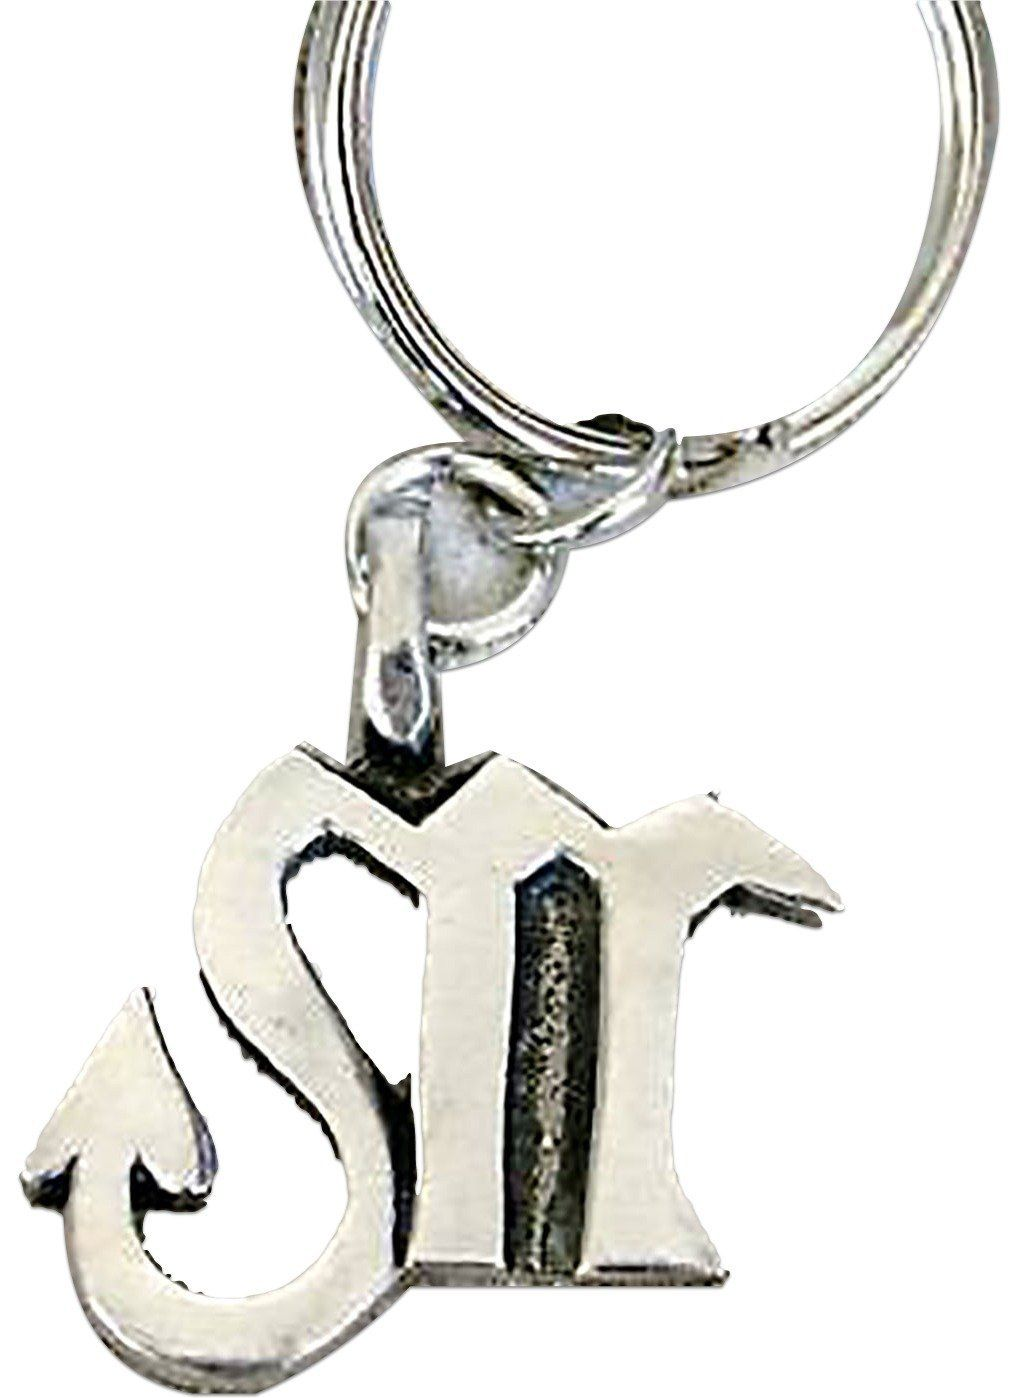 "Amazon.com: Unique & Custom 1 Single Medium Size ""Split"" Circle Keychain Ring Made of Chrome w/ Superstitious Scorpio M w/ Arrow Astrology Zodiac Sign Style Charm Made of Metal {Silver Color}: Automotive"